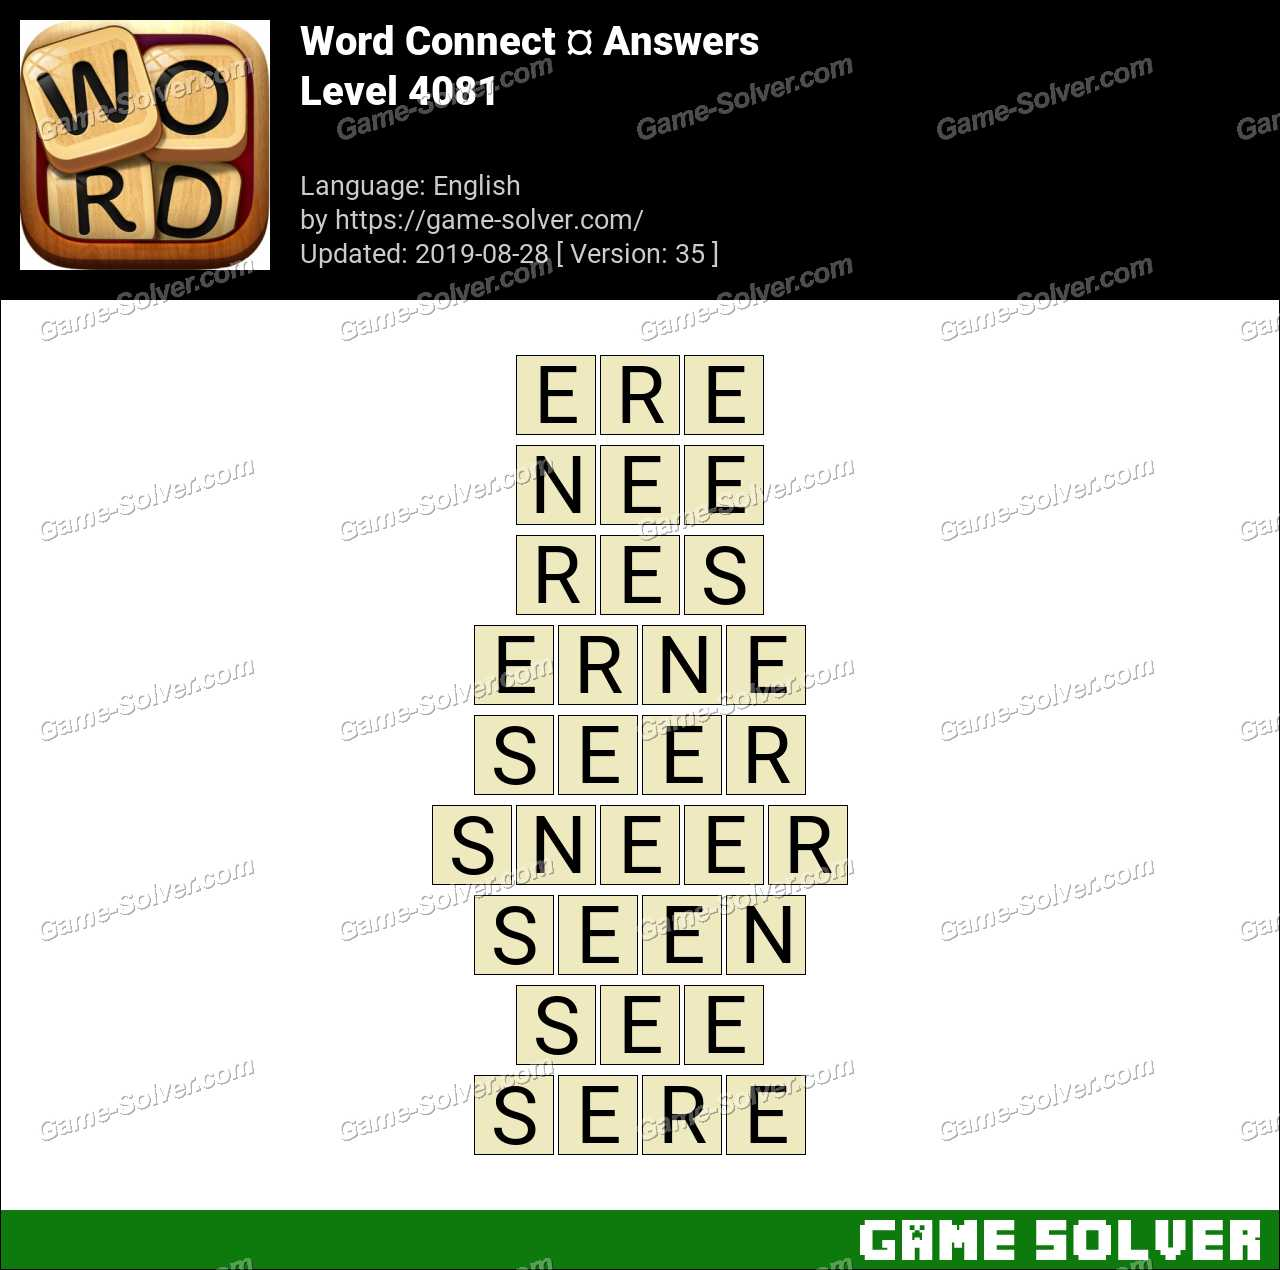 Word Connect Level 4081 Answers